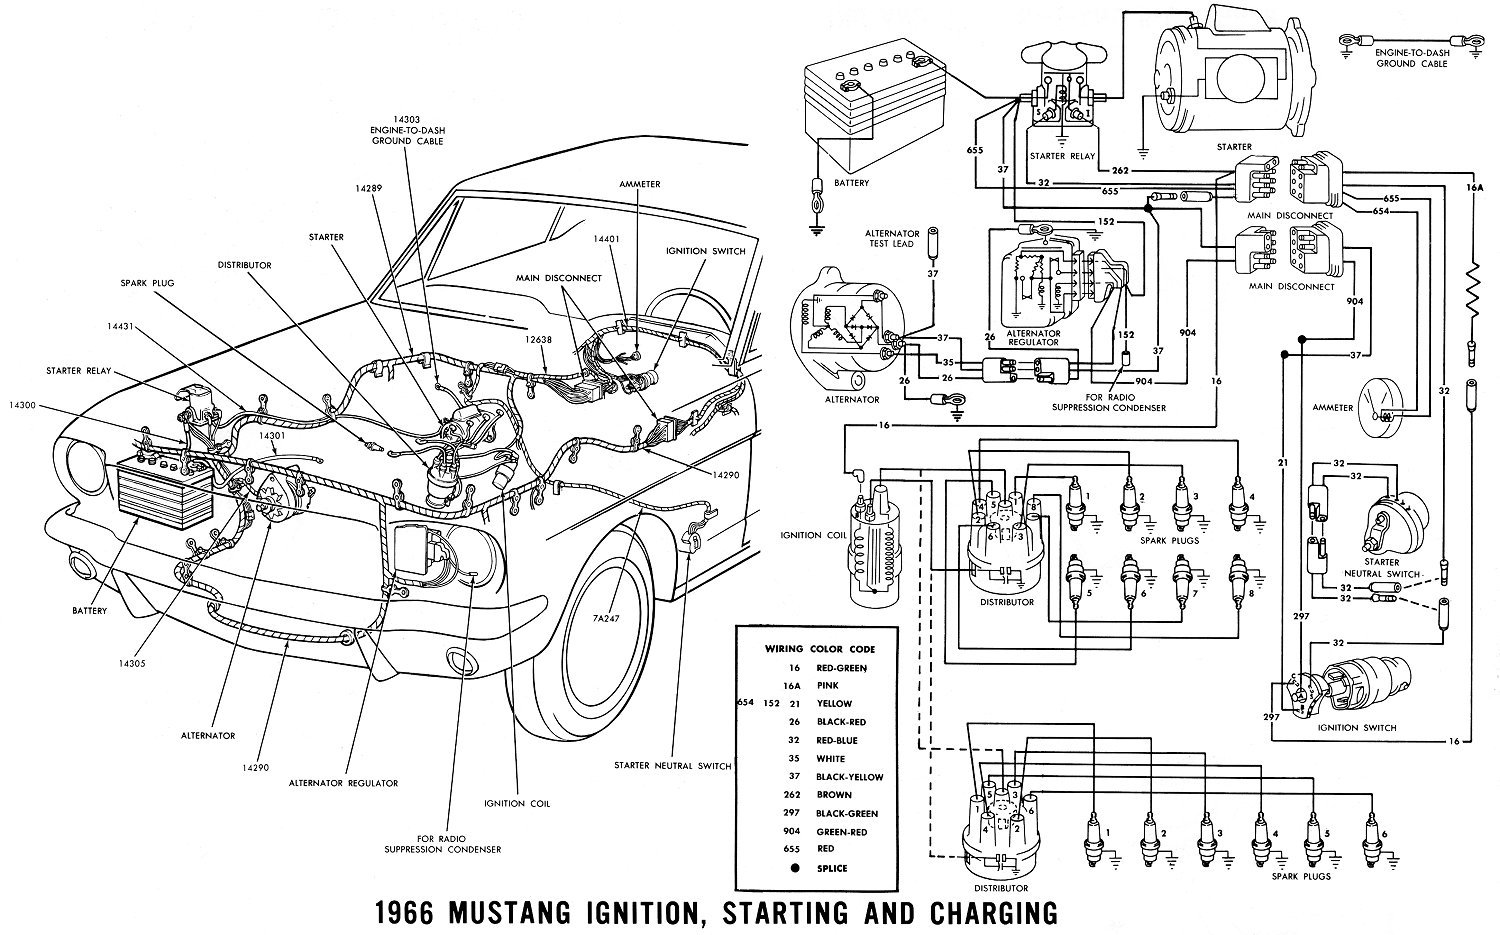 Mustang Ignition Switch Diagram What Pins Are 66ignit